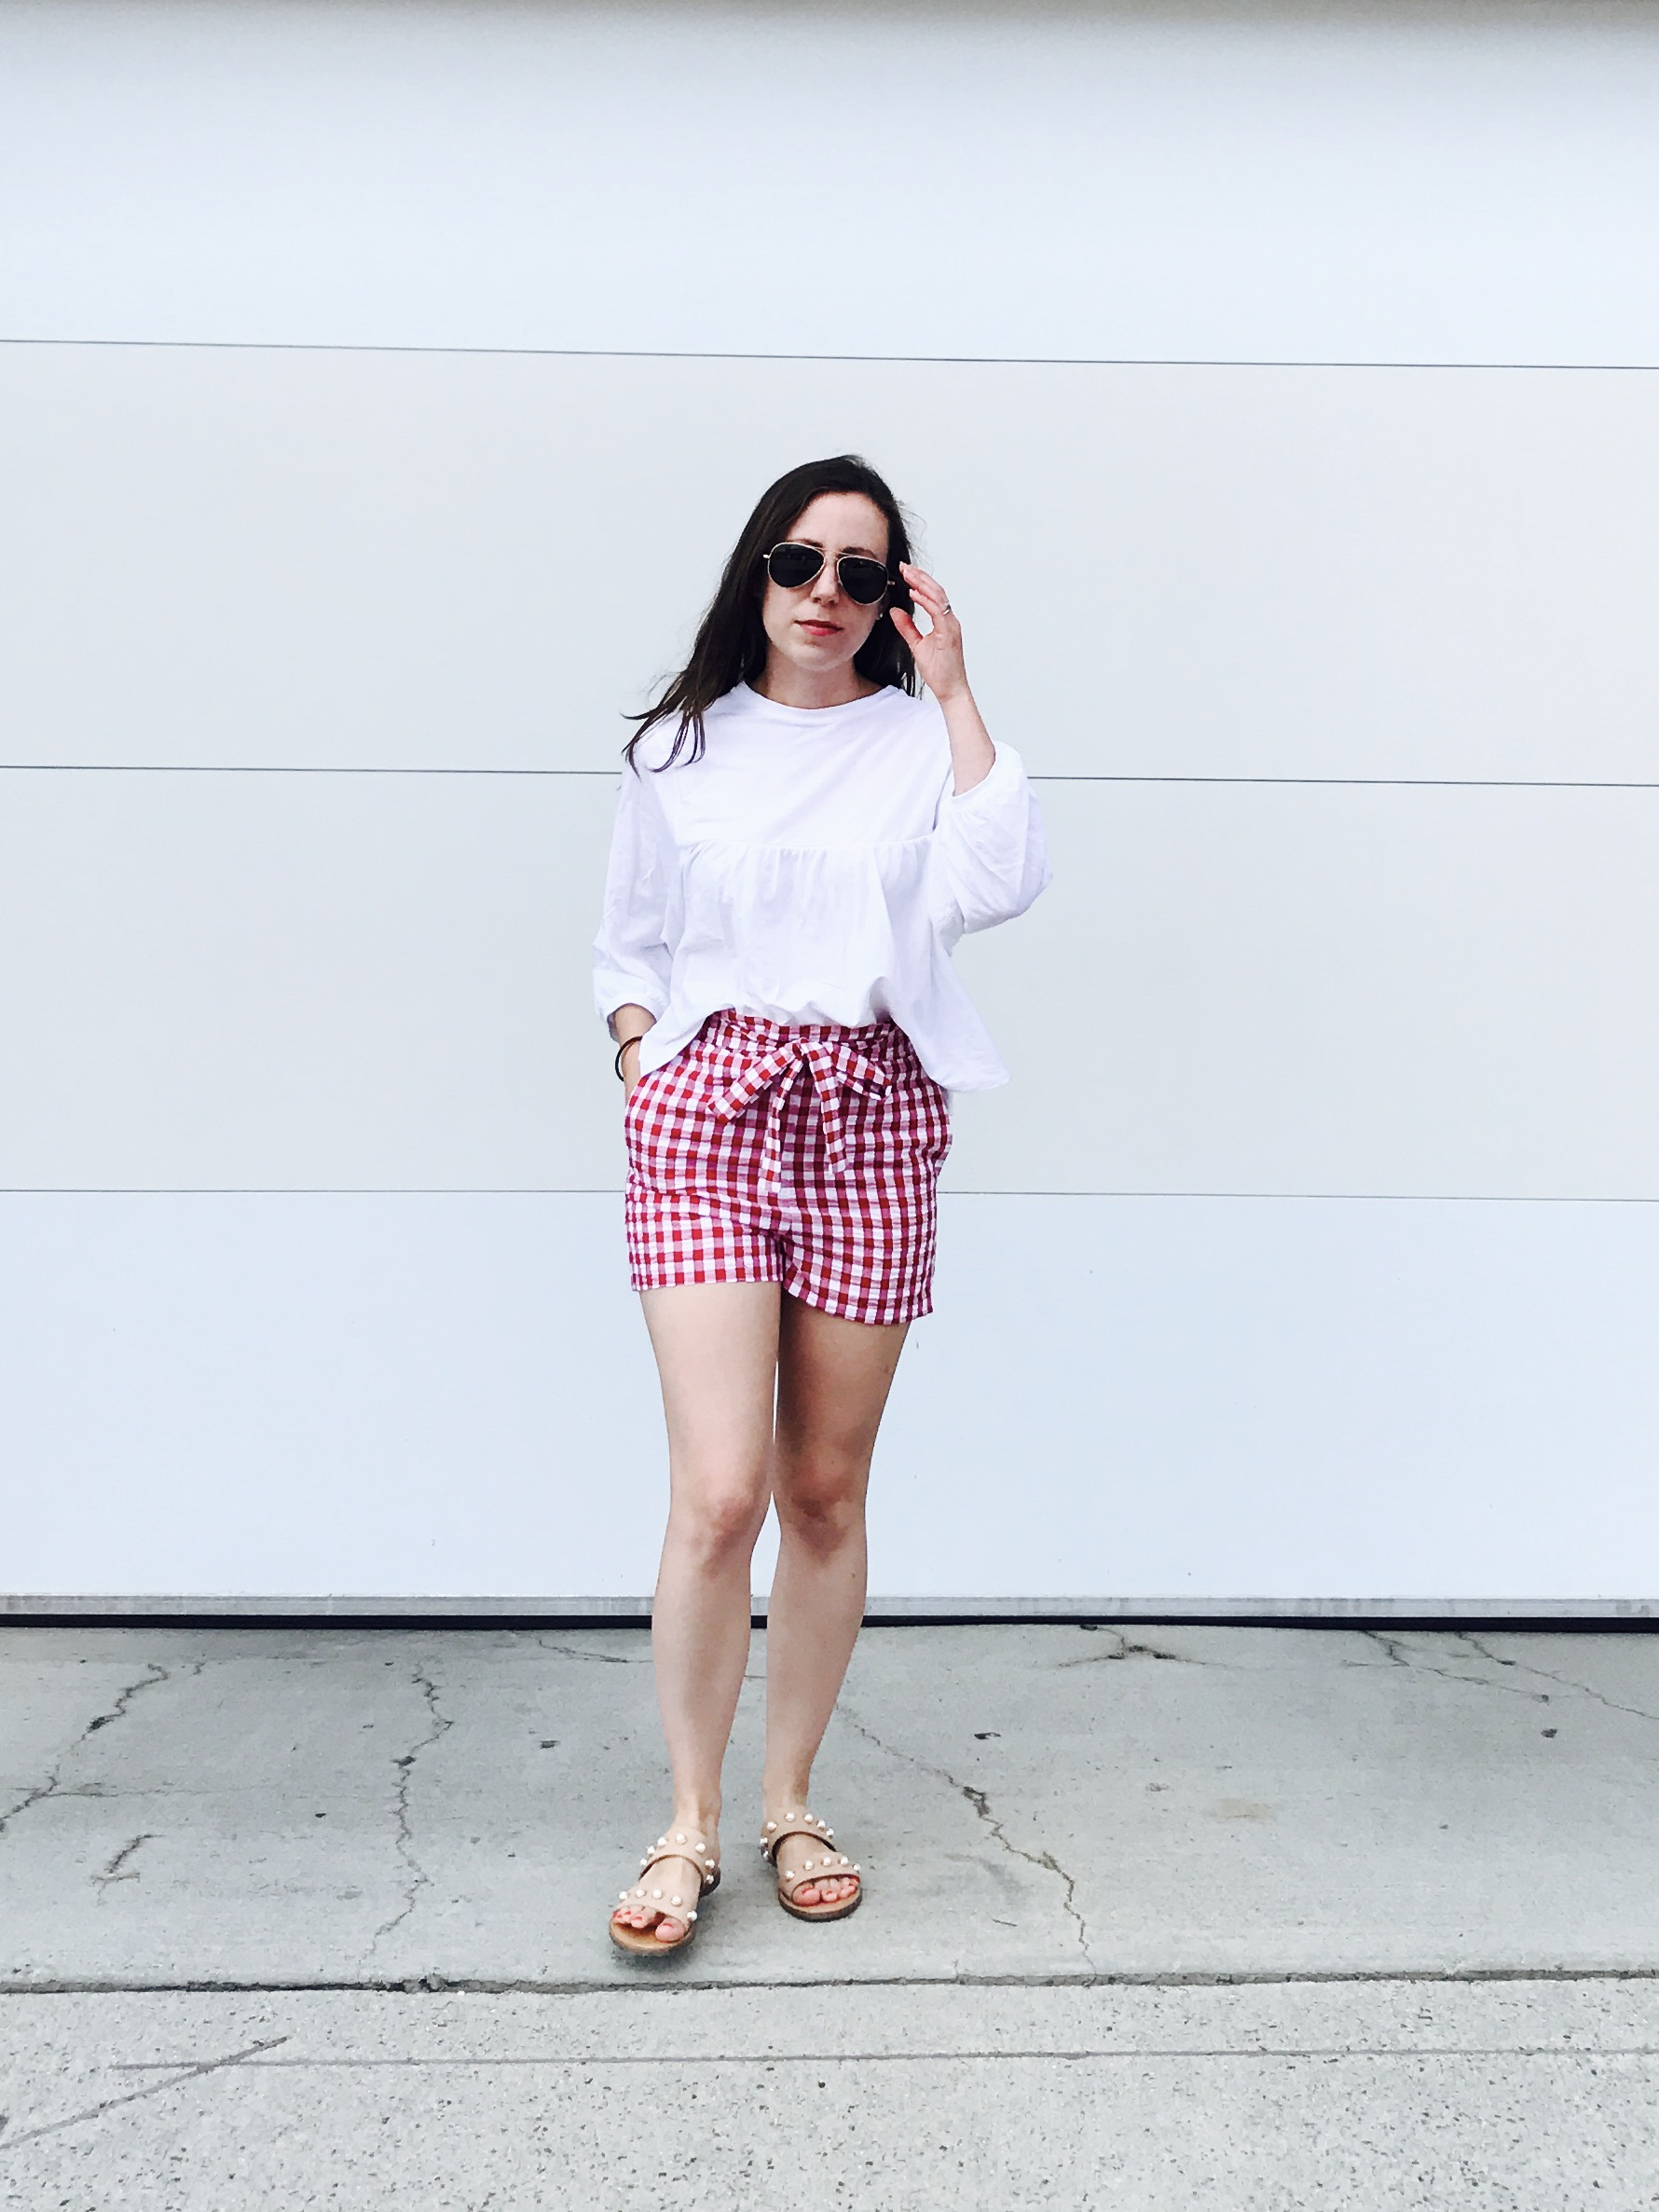 b94ec6f3 zara top asos new look gingham shorts target pearl flats randolph sunnies